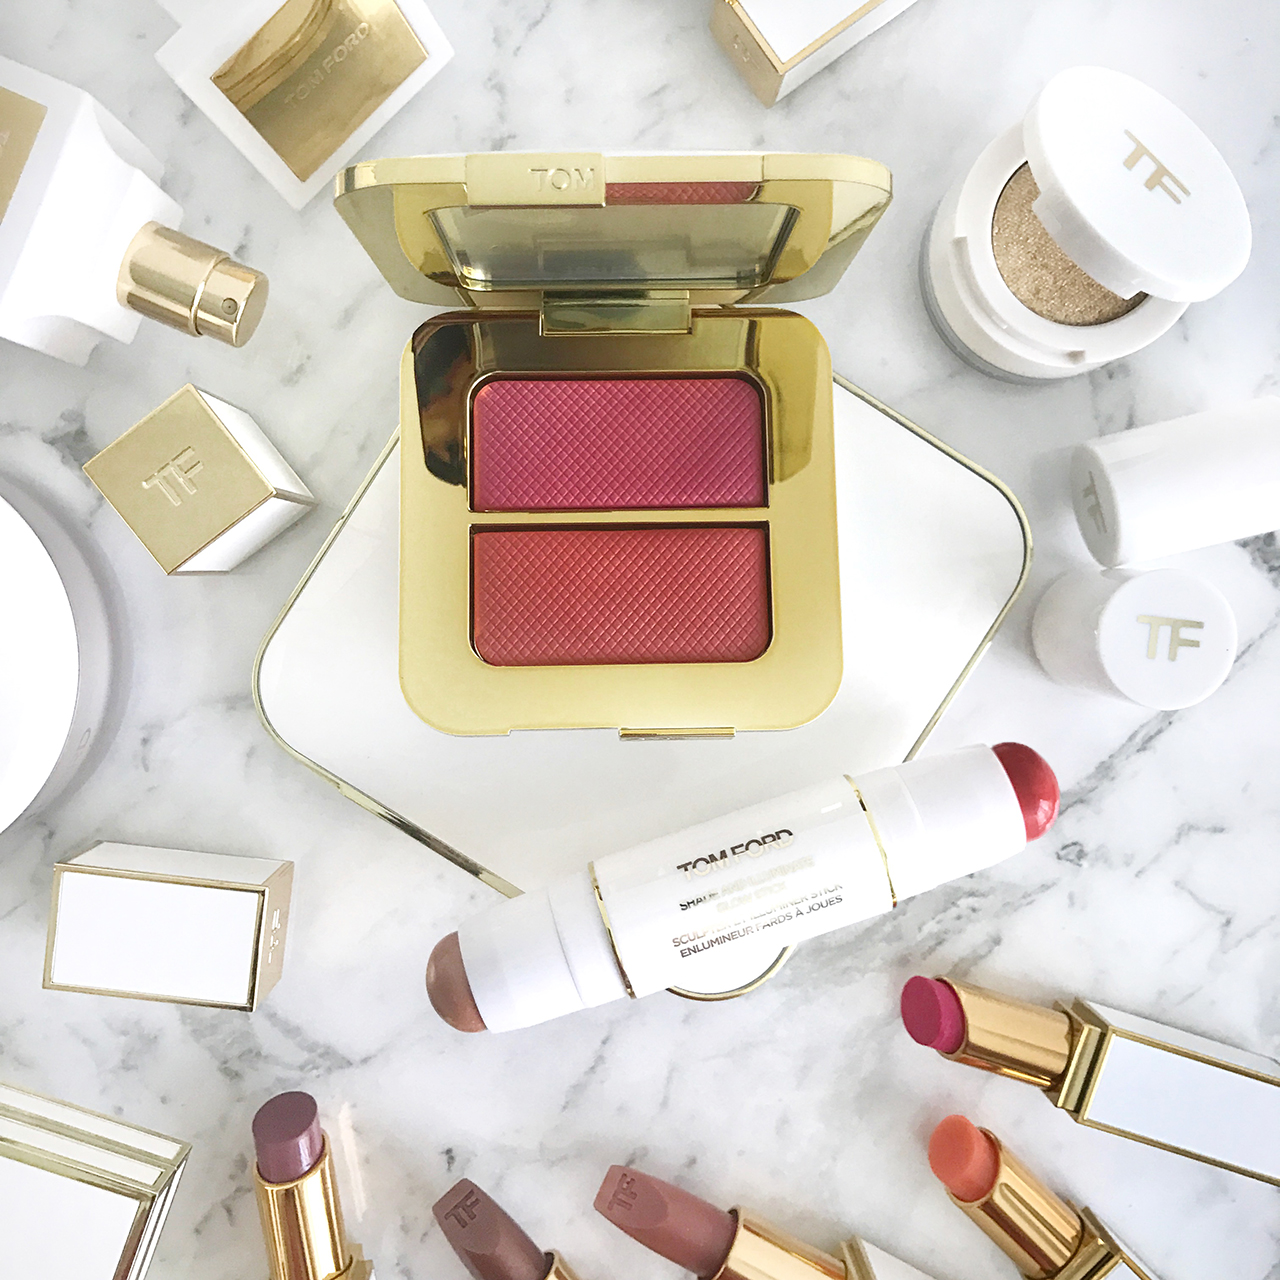 Tom Ford Exotica Flora Sheer Cheek Color Duo & Sunstruck Shade and Illuminate Glow Stick